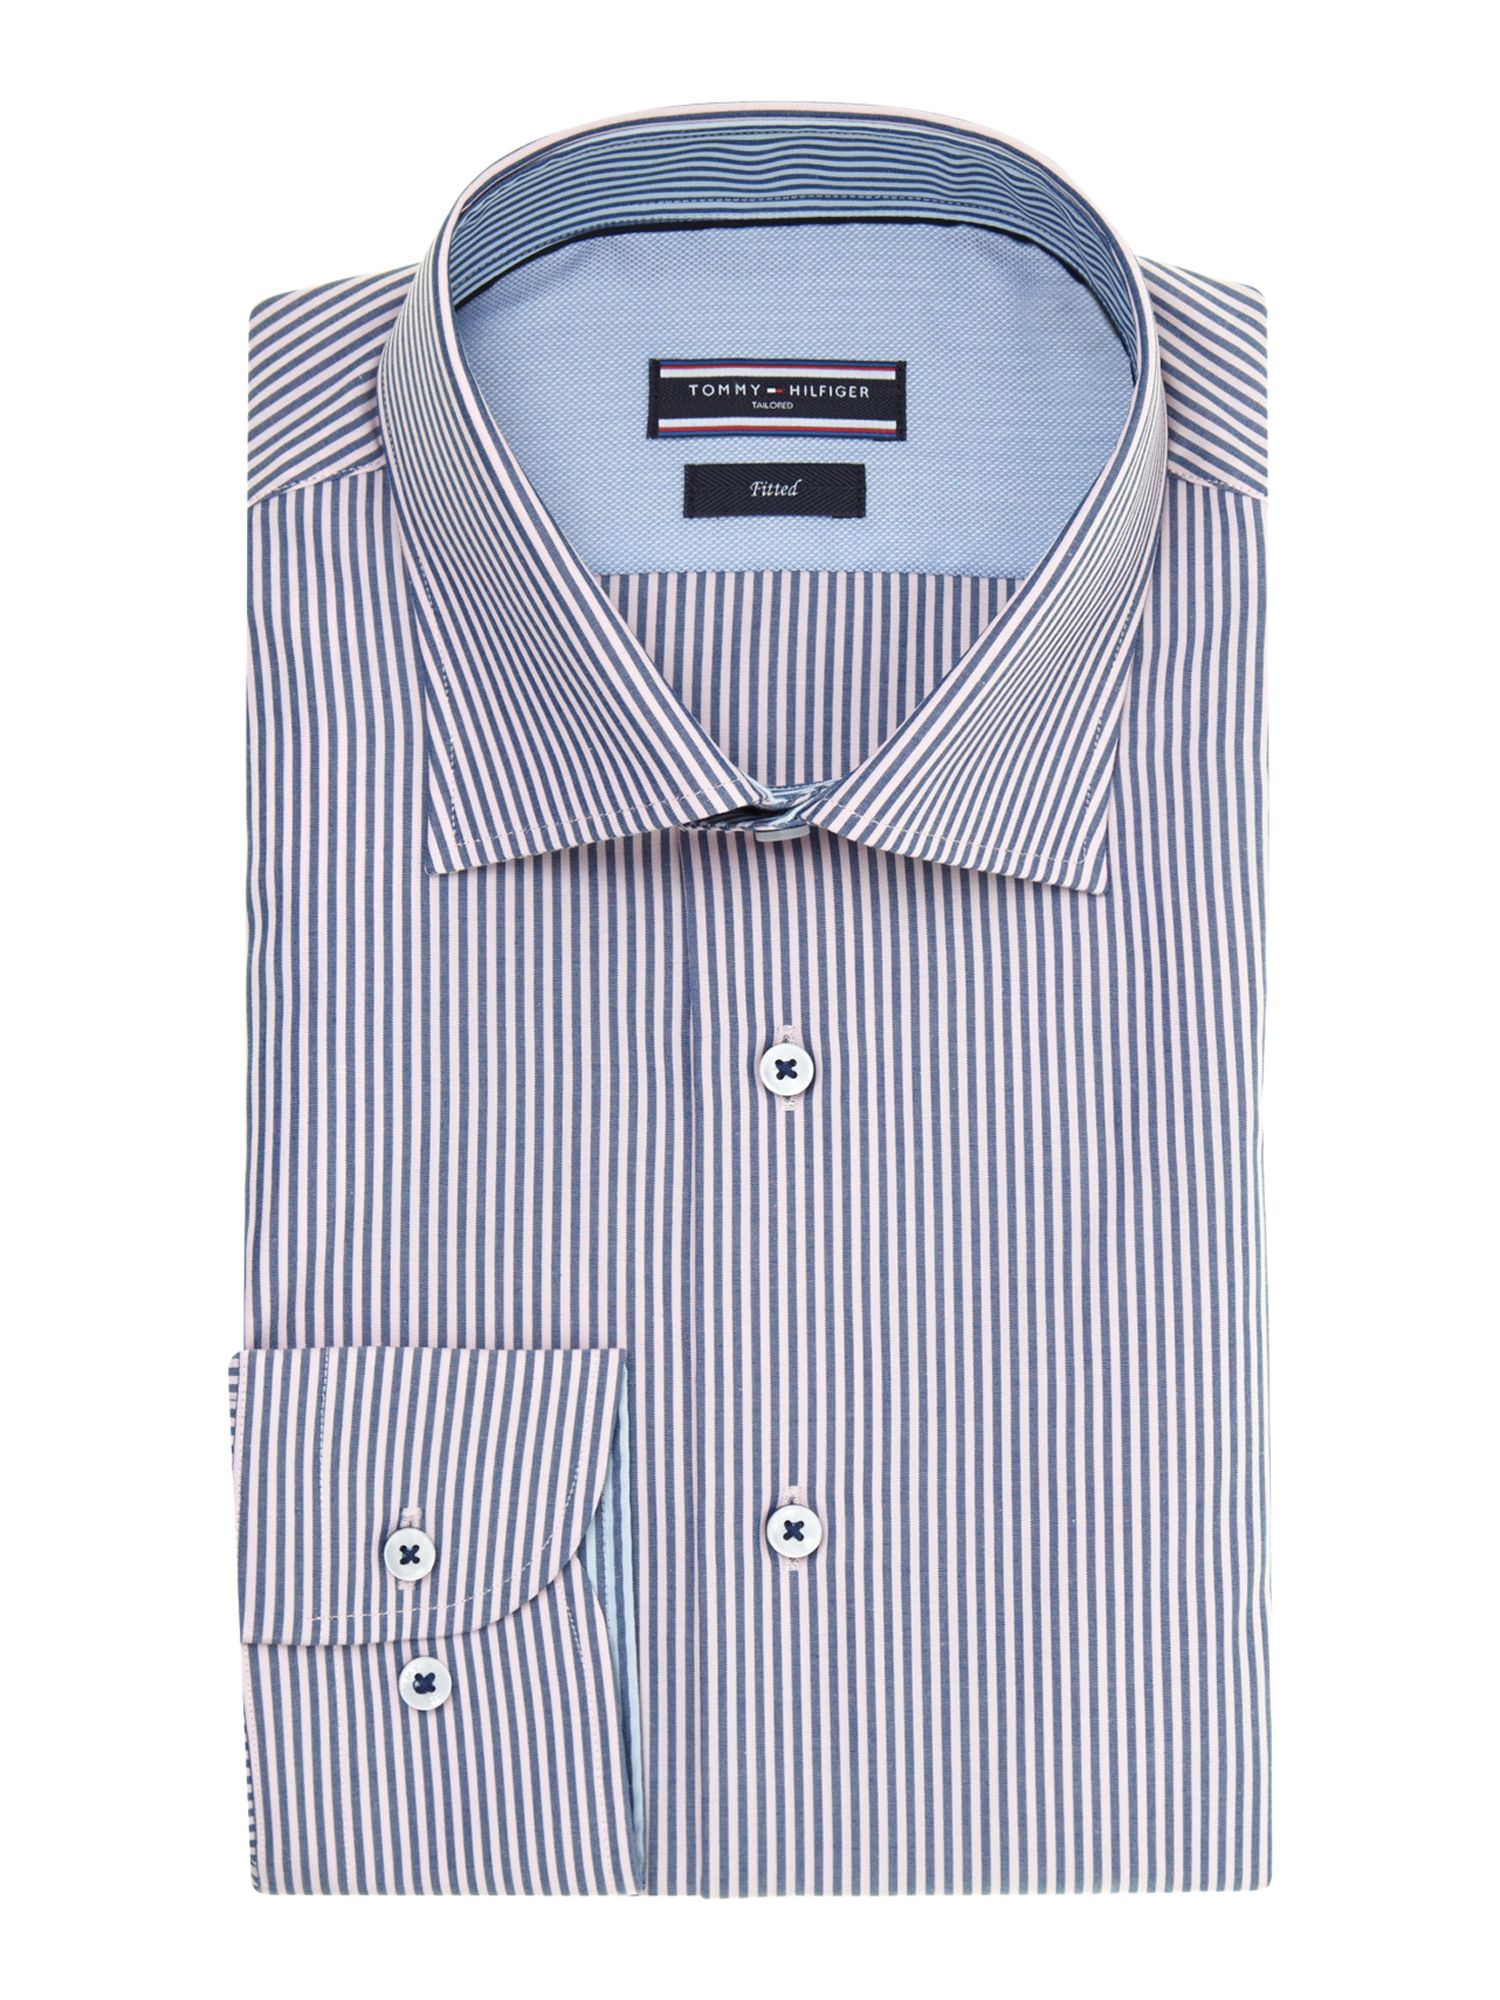 Jonny stripe slim fit shirt